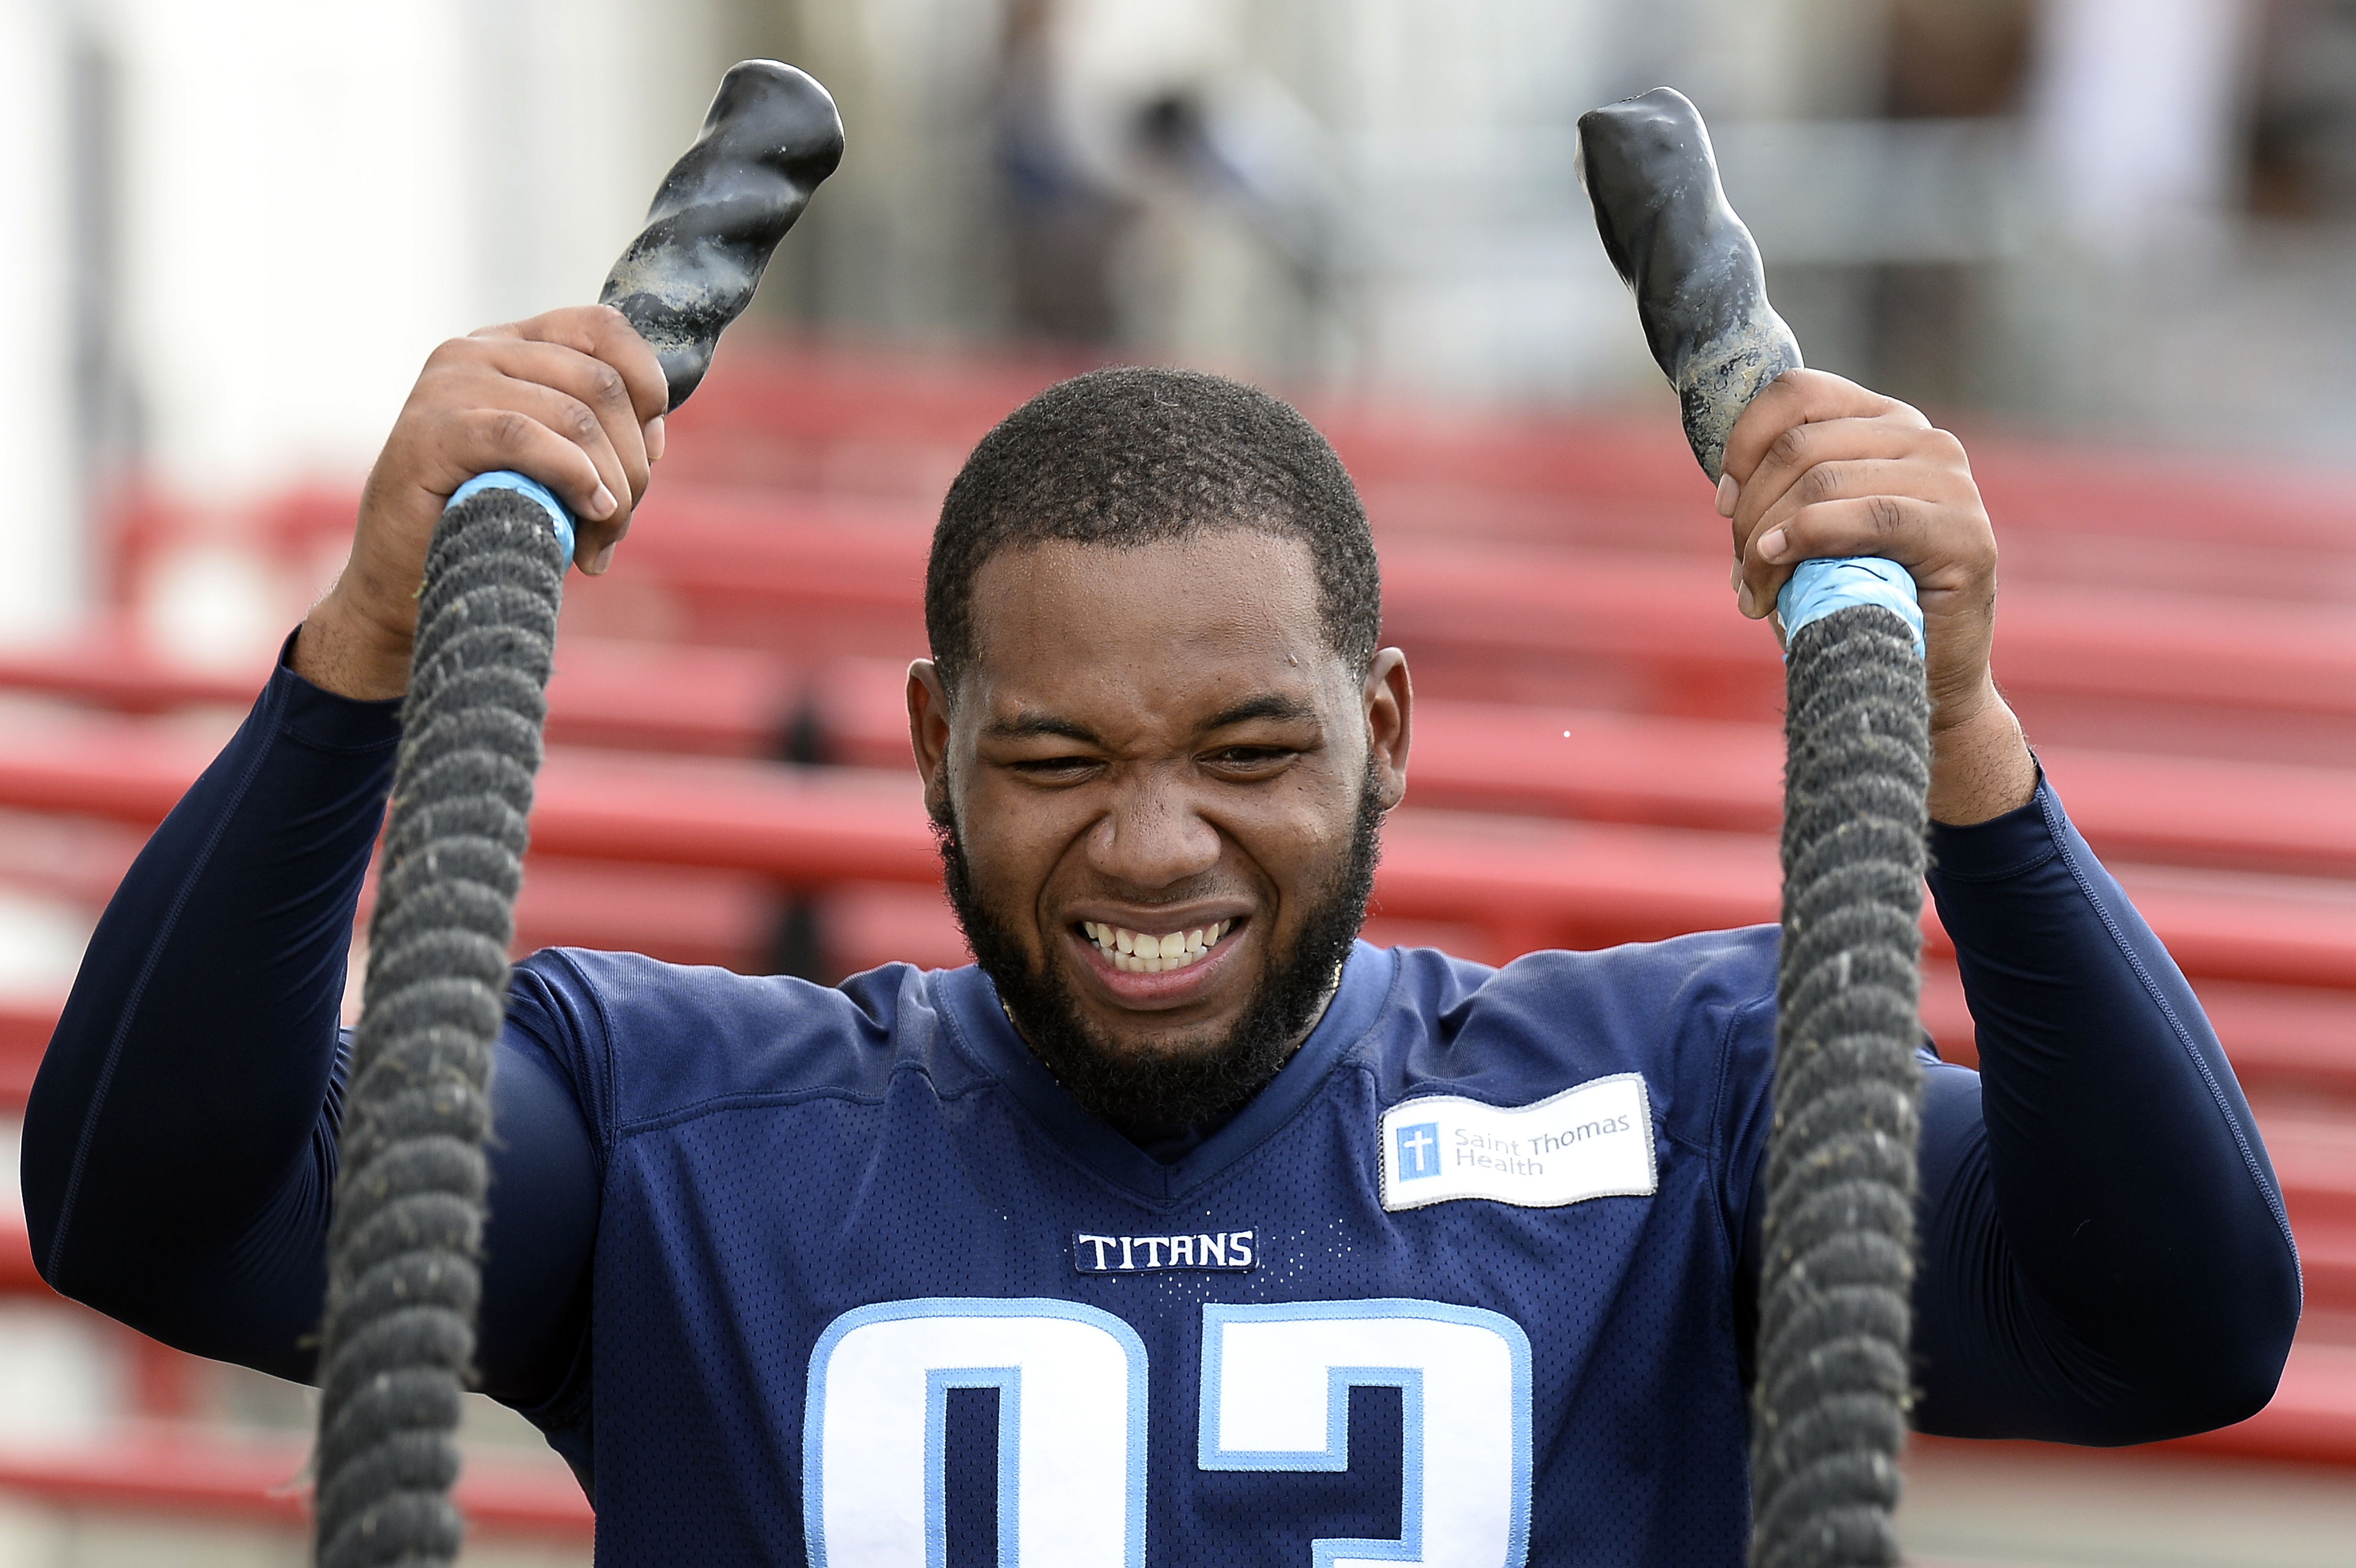 FILE -- In this Aug. 4, 2016 file photo, Tennessee Titans outside linebacker Kevin Dodd does a conditioning drill with heavy ropes during NFL football training camp in Nashville, Tenn. Dodd is looking forward to the opportunity to make his debut Saturday